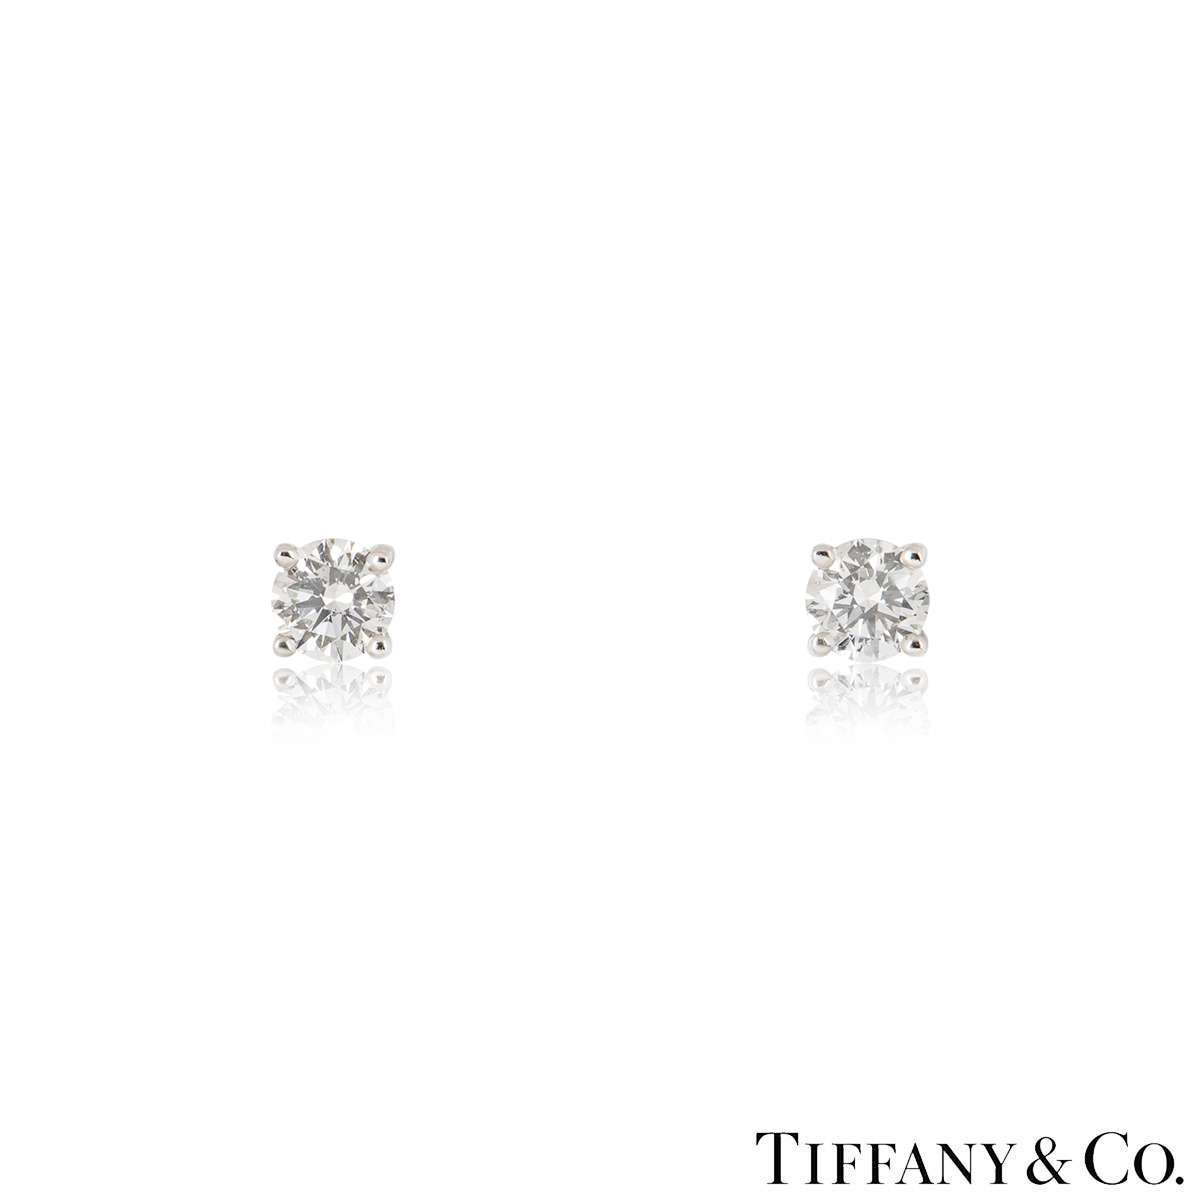 Tiffany & Co. Solitaire Diamond Platinum Stud Earrings 1.24ct TDW